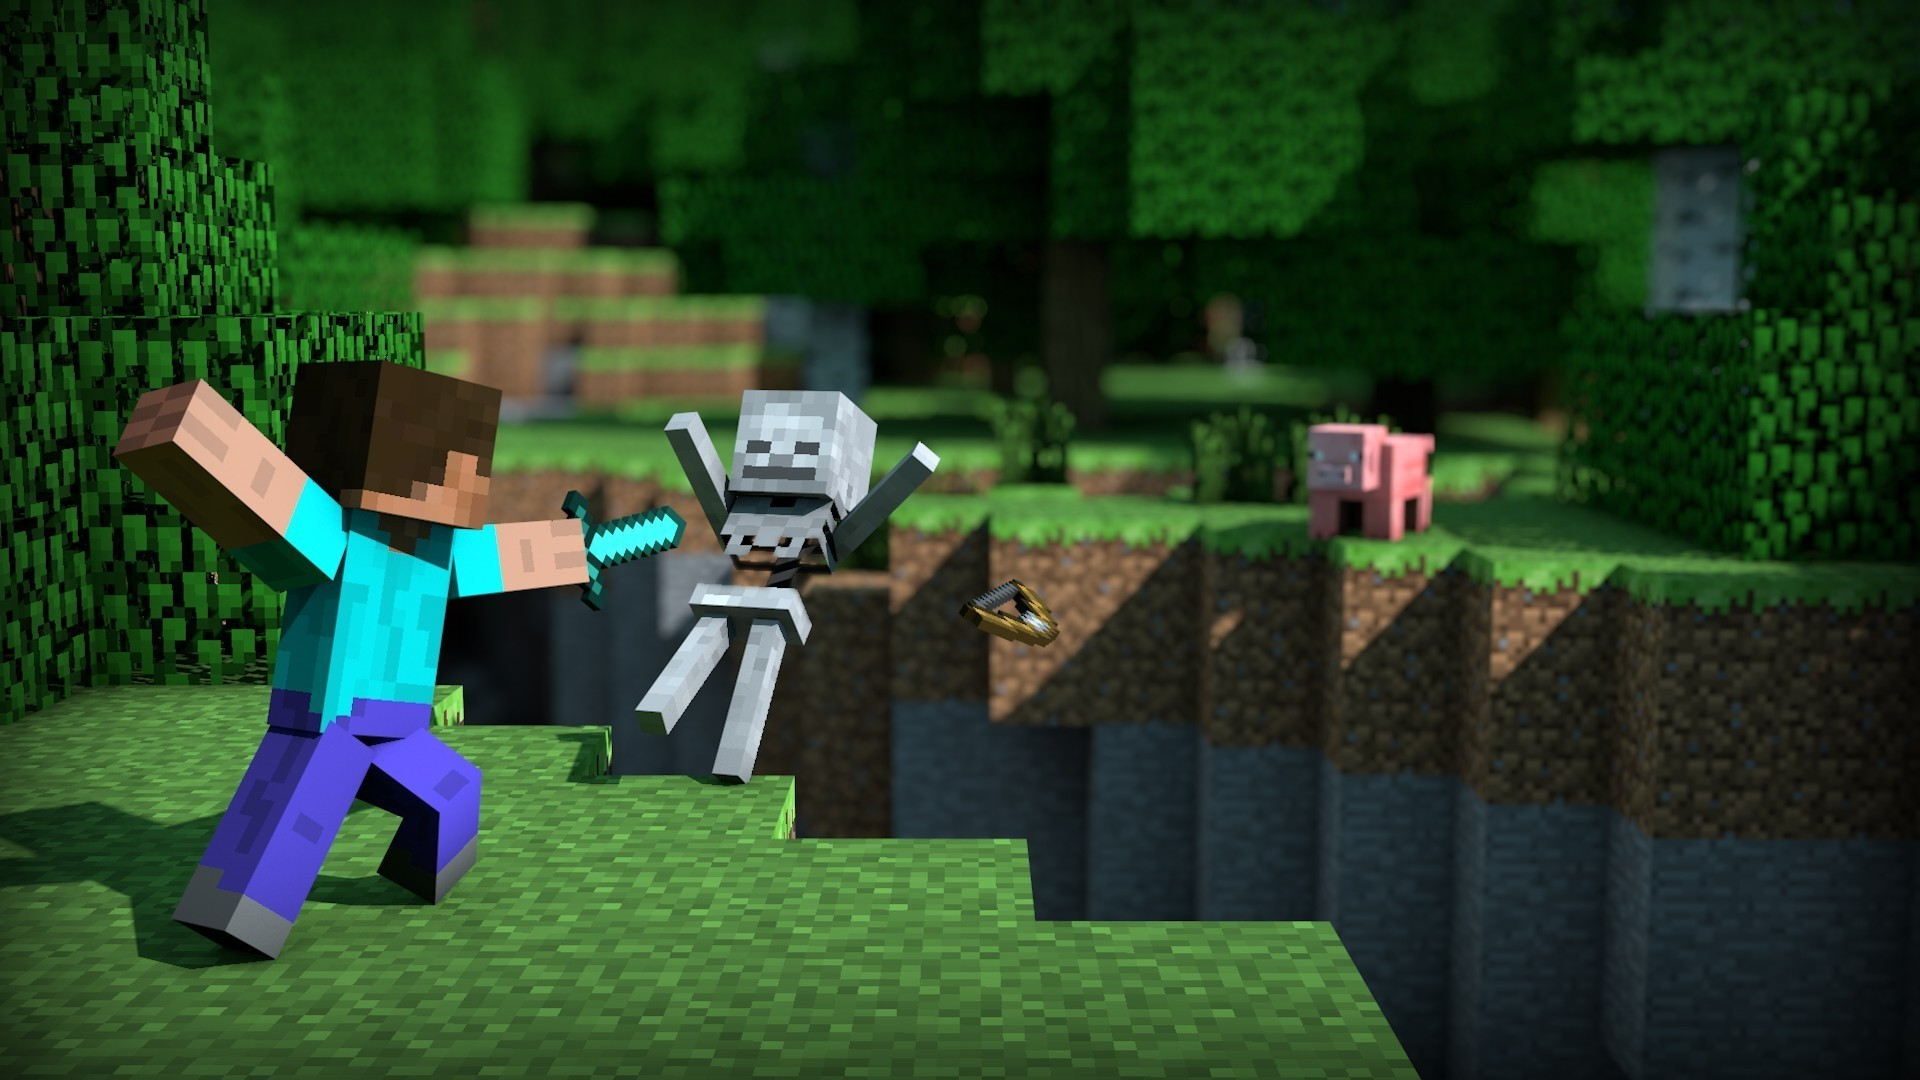 Minecraft Wallpapers Full HD Group 1920×1080 Minecraft Wallpapers HD 1080p  (41 Wallpapers)